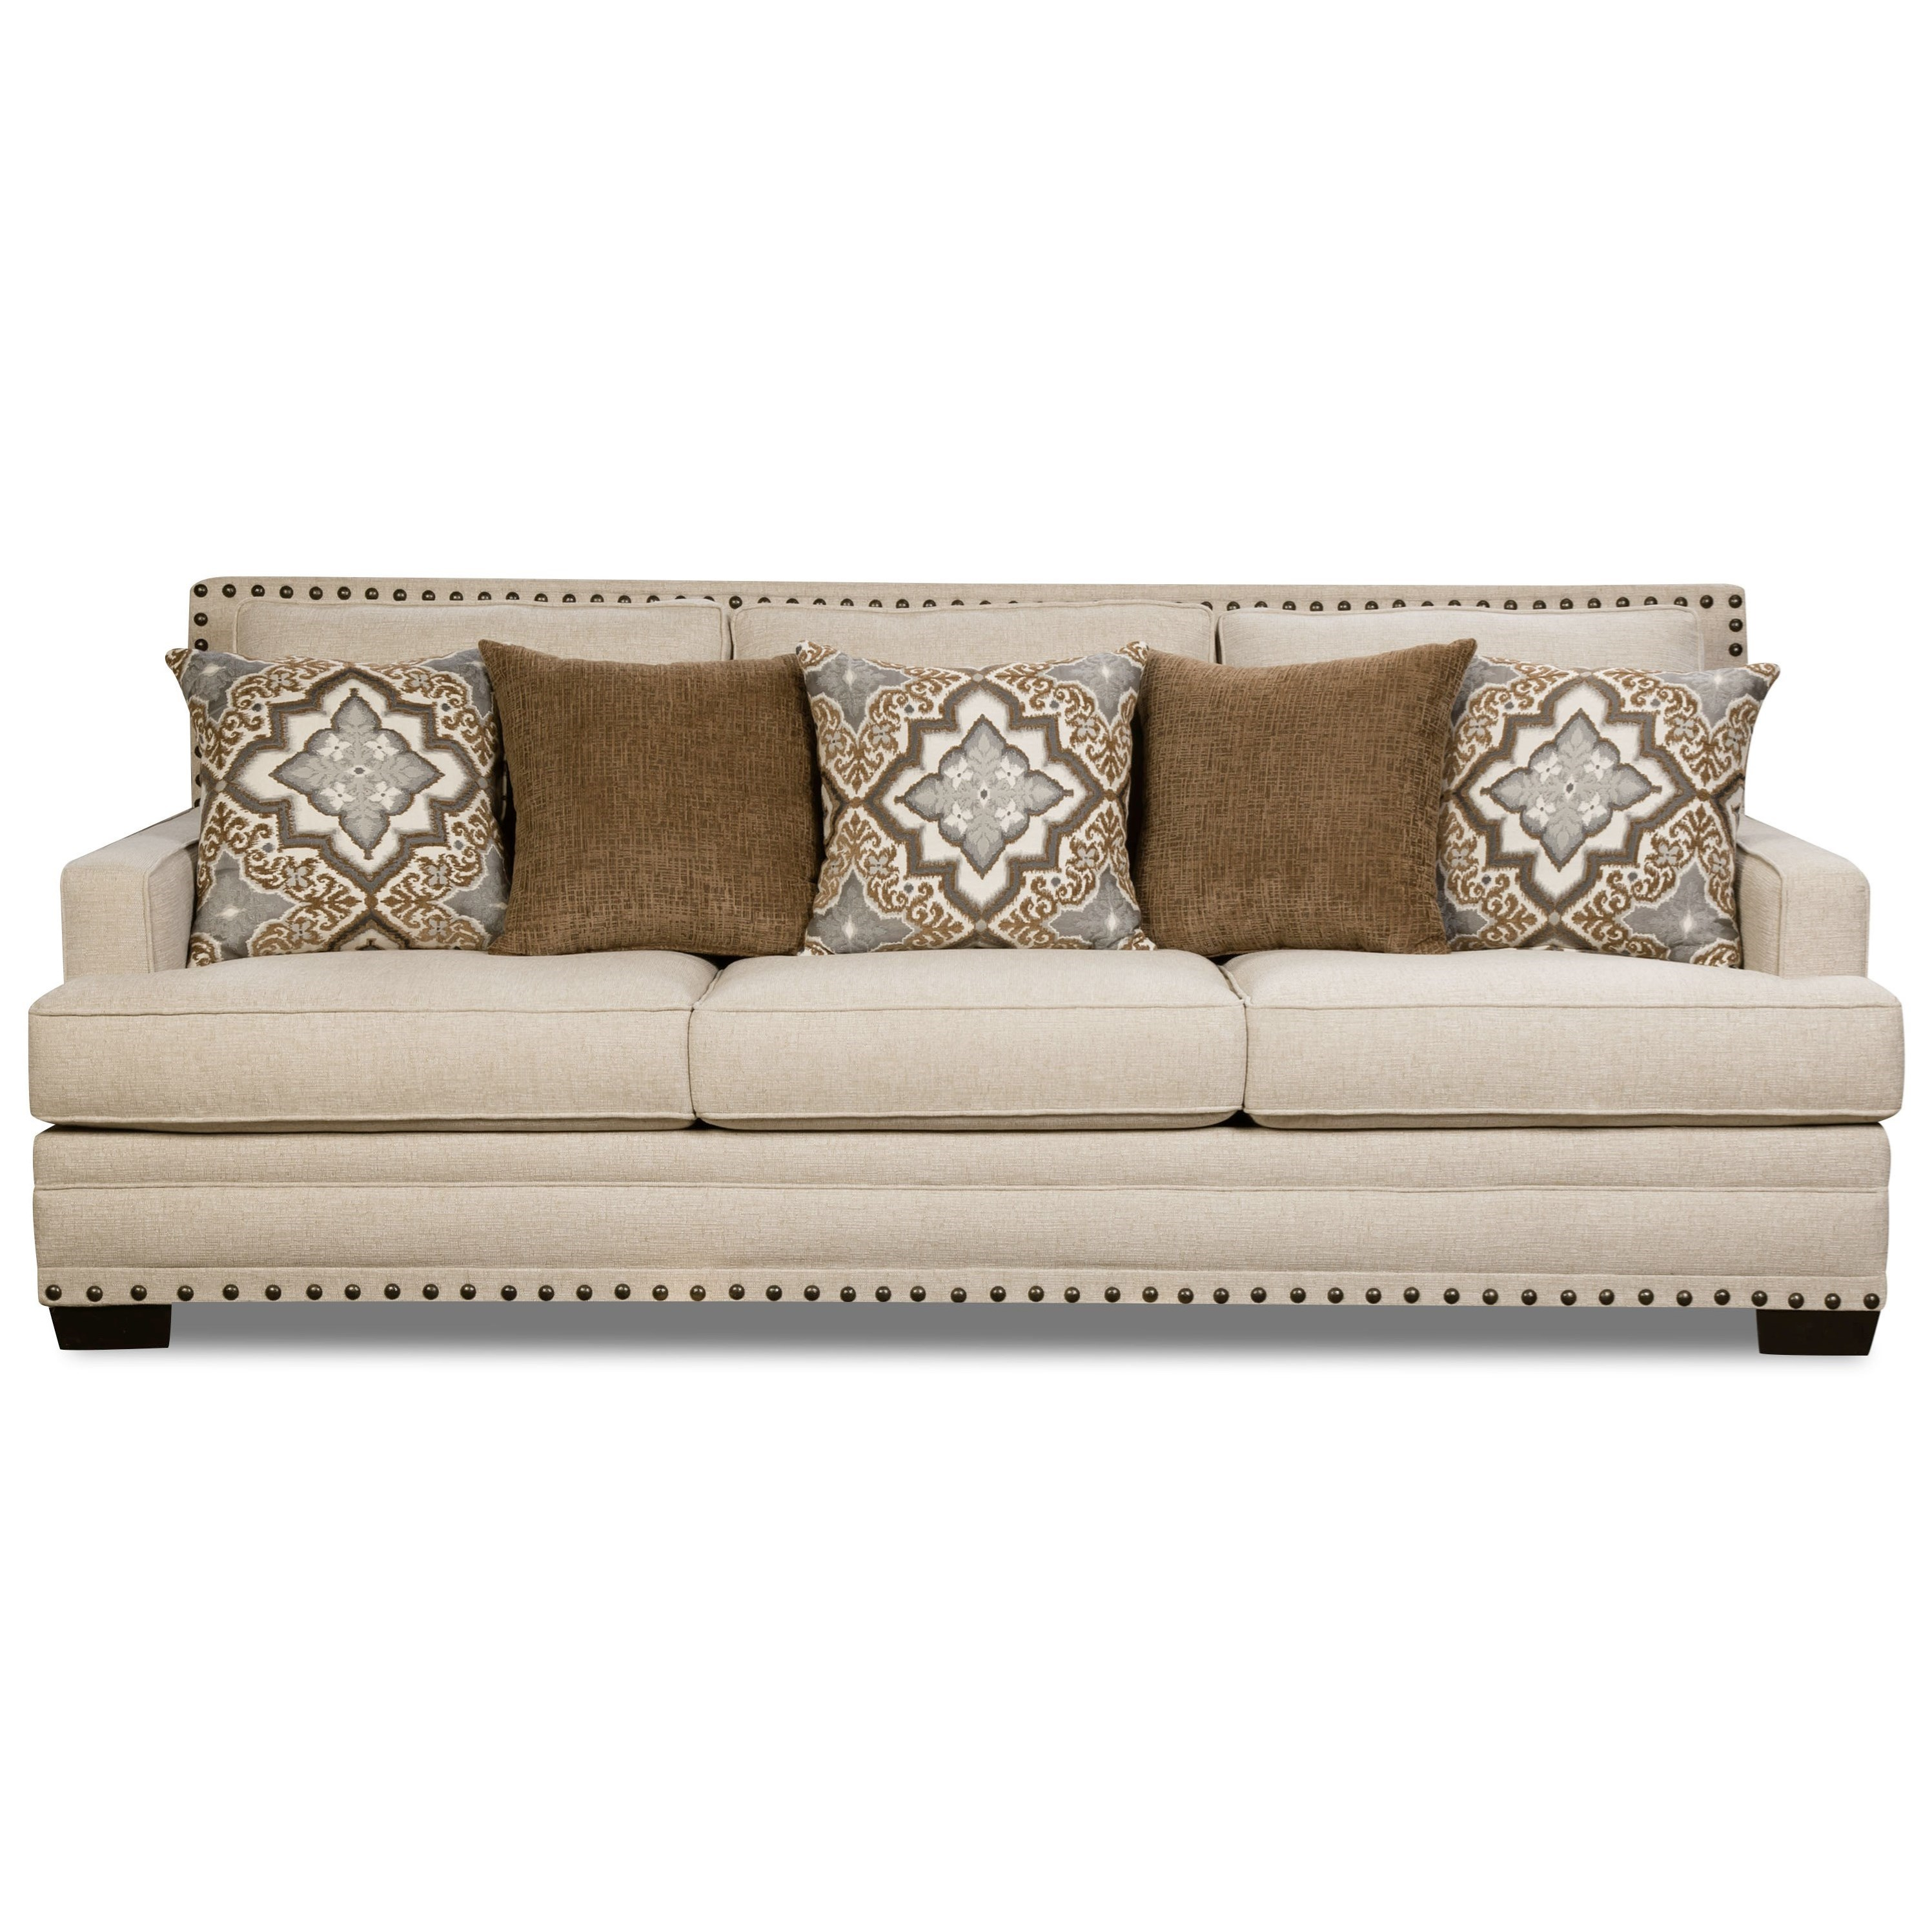 34B0 Sofa by Corinthian at Story & Lee Furniture